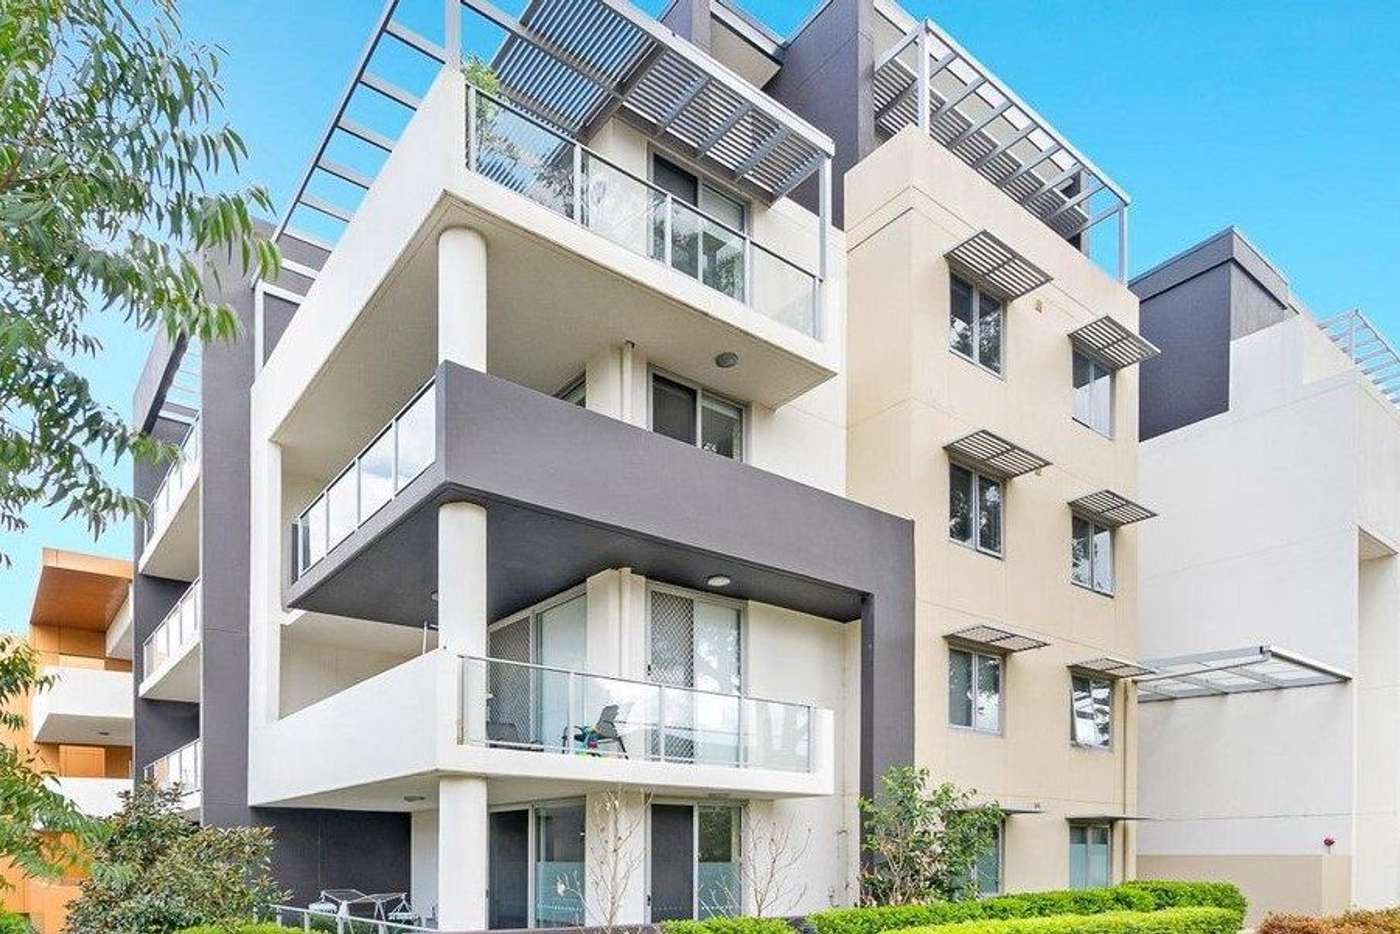 Main view of Homely apartment listing, 12/30-34 Keeler Street, Carlingford NSW 2118